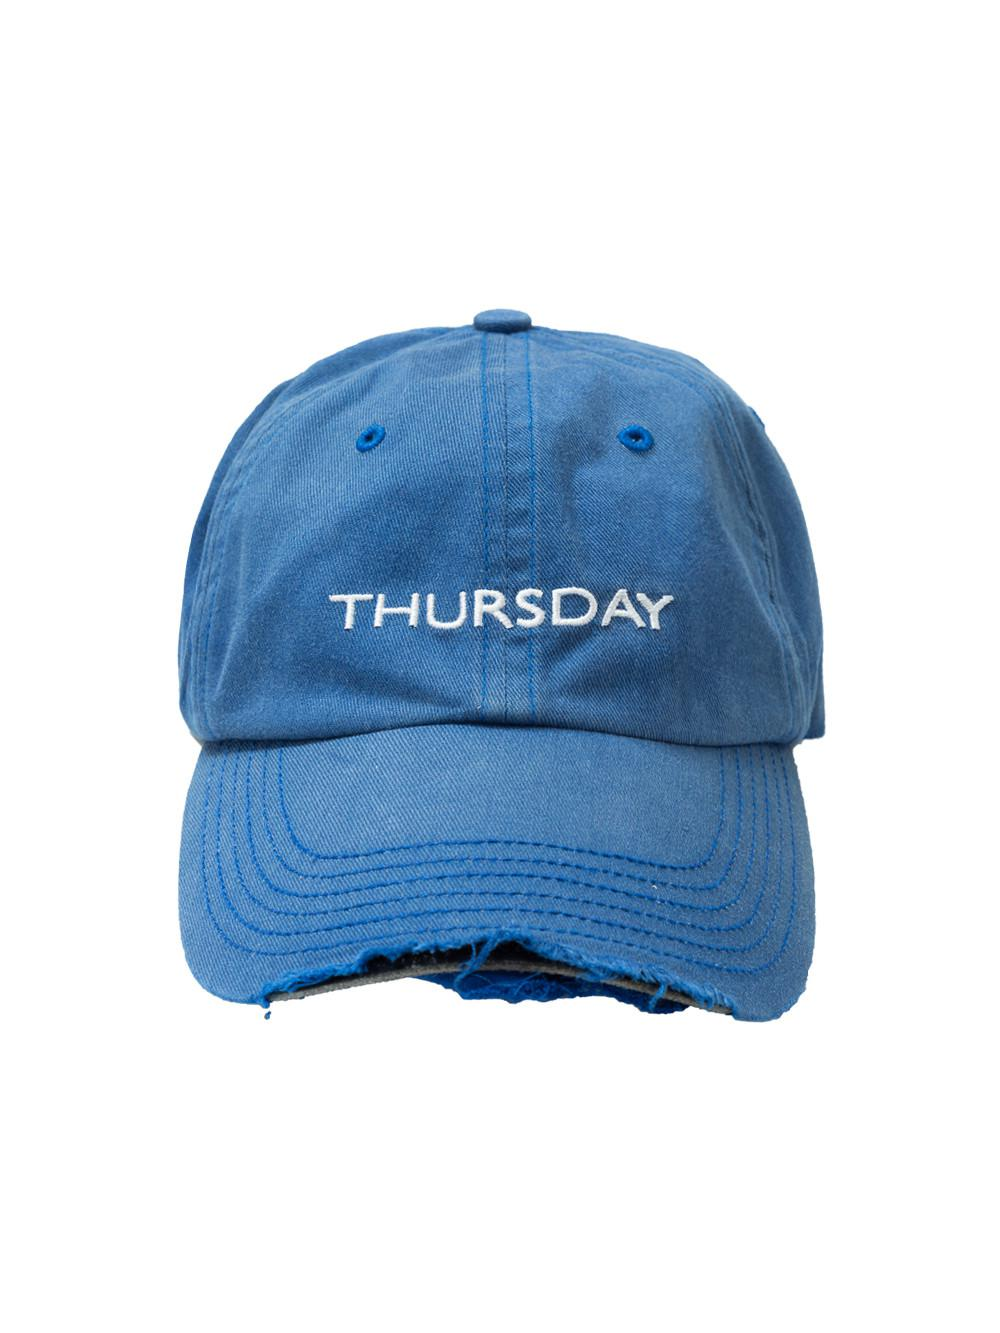 d1e917c00 Lyst - Vetements Weekday Cap in Blue for Men - Save 50%